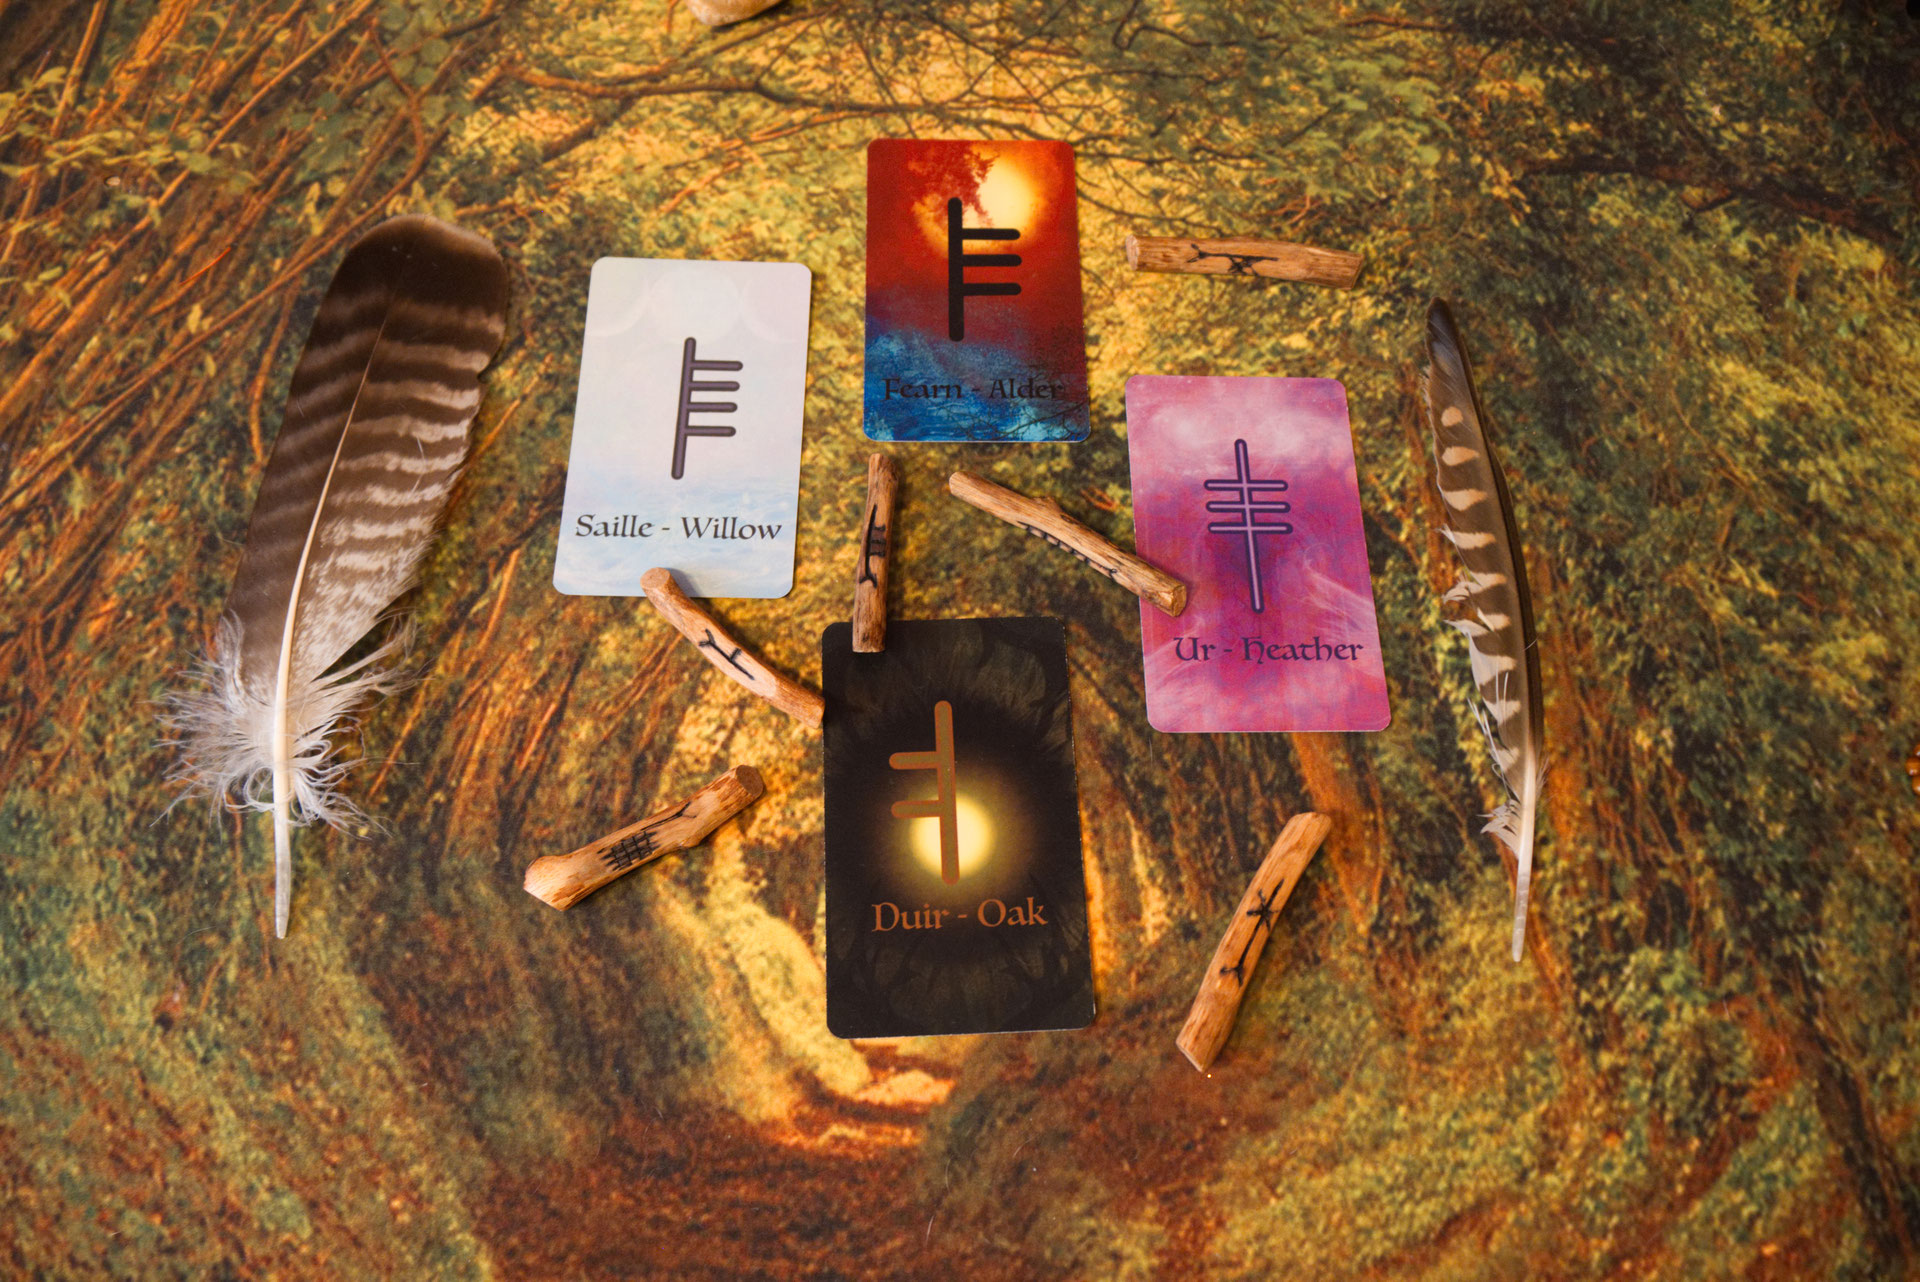 Tarot & other Divination Tools - Tales Unfold Free Tarot and Oracle